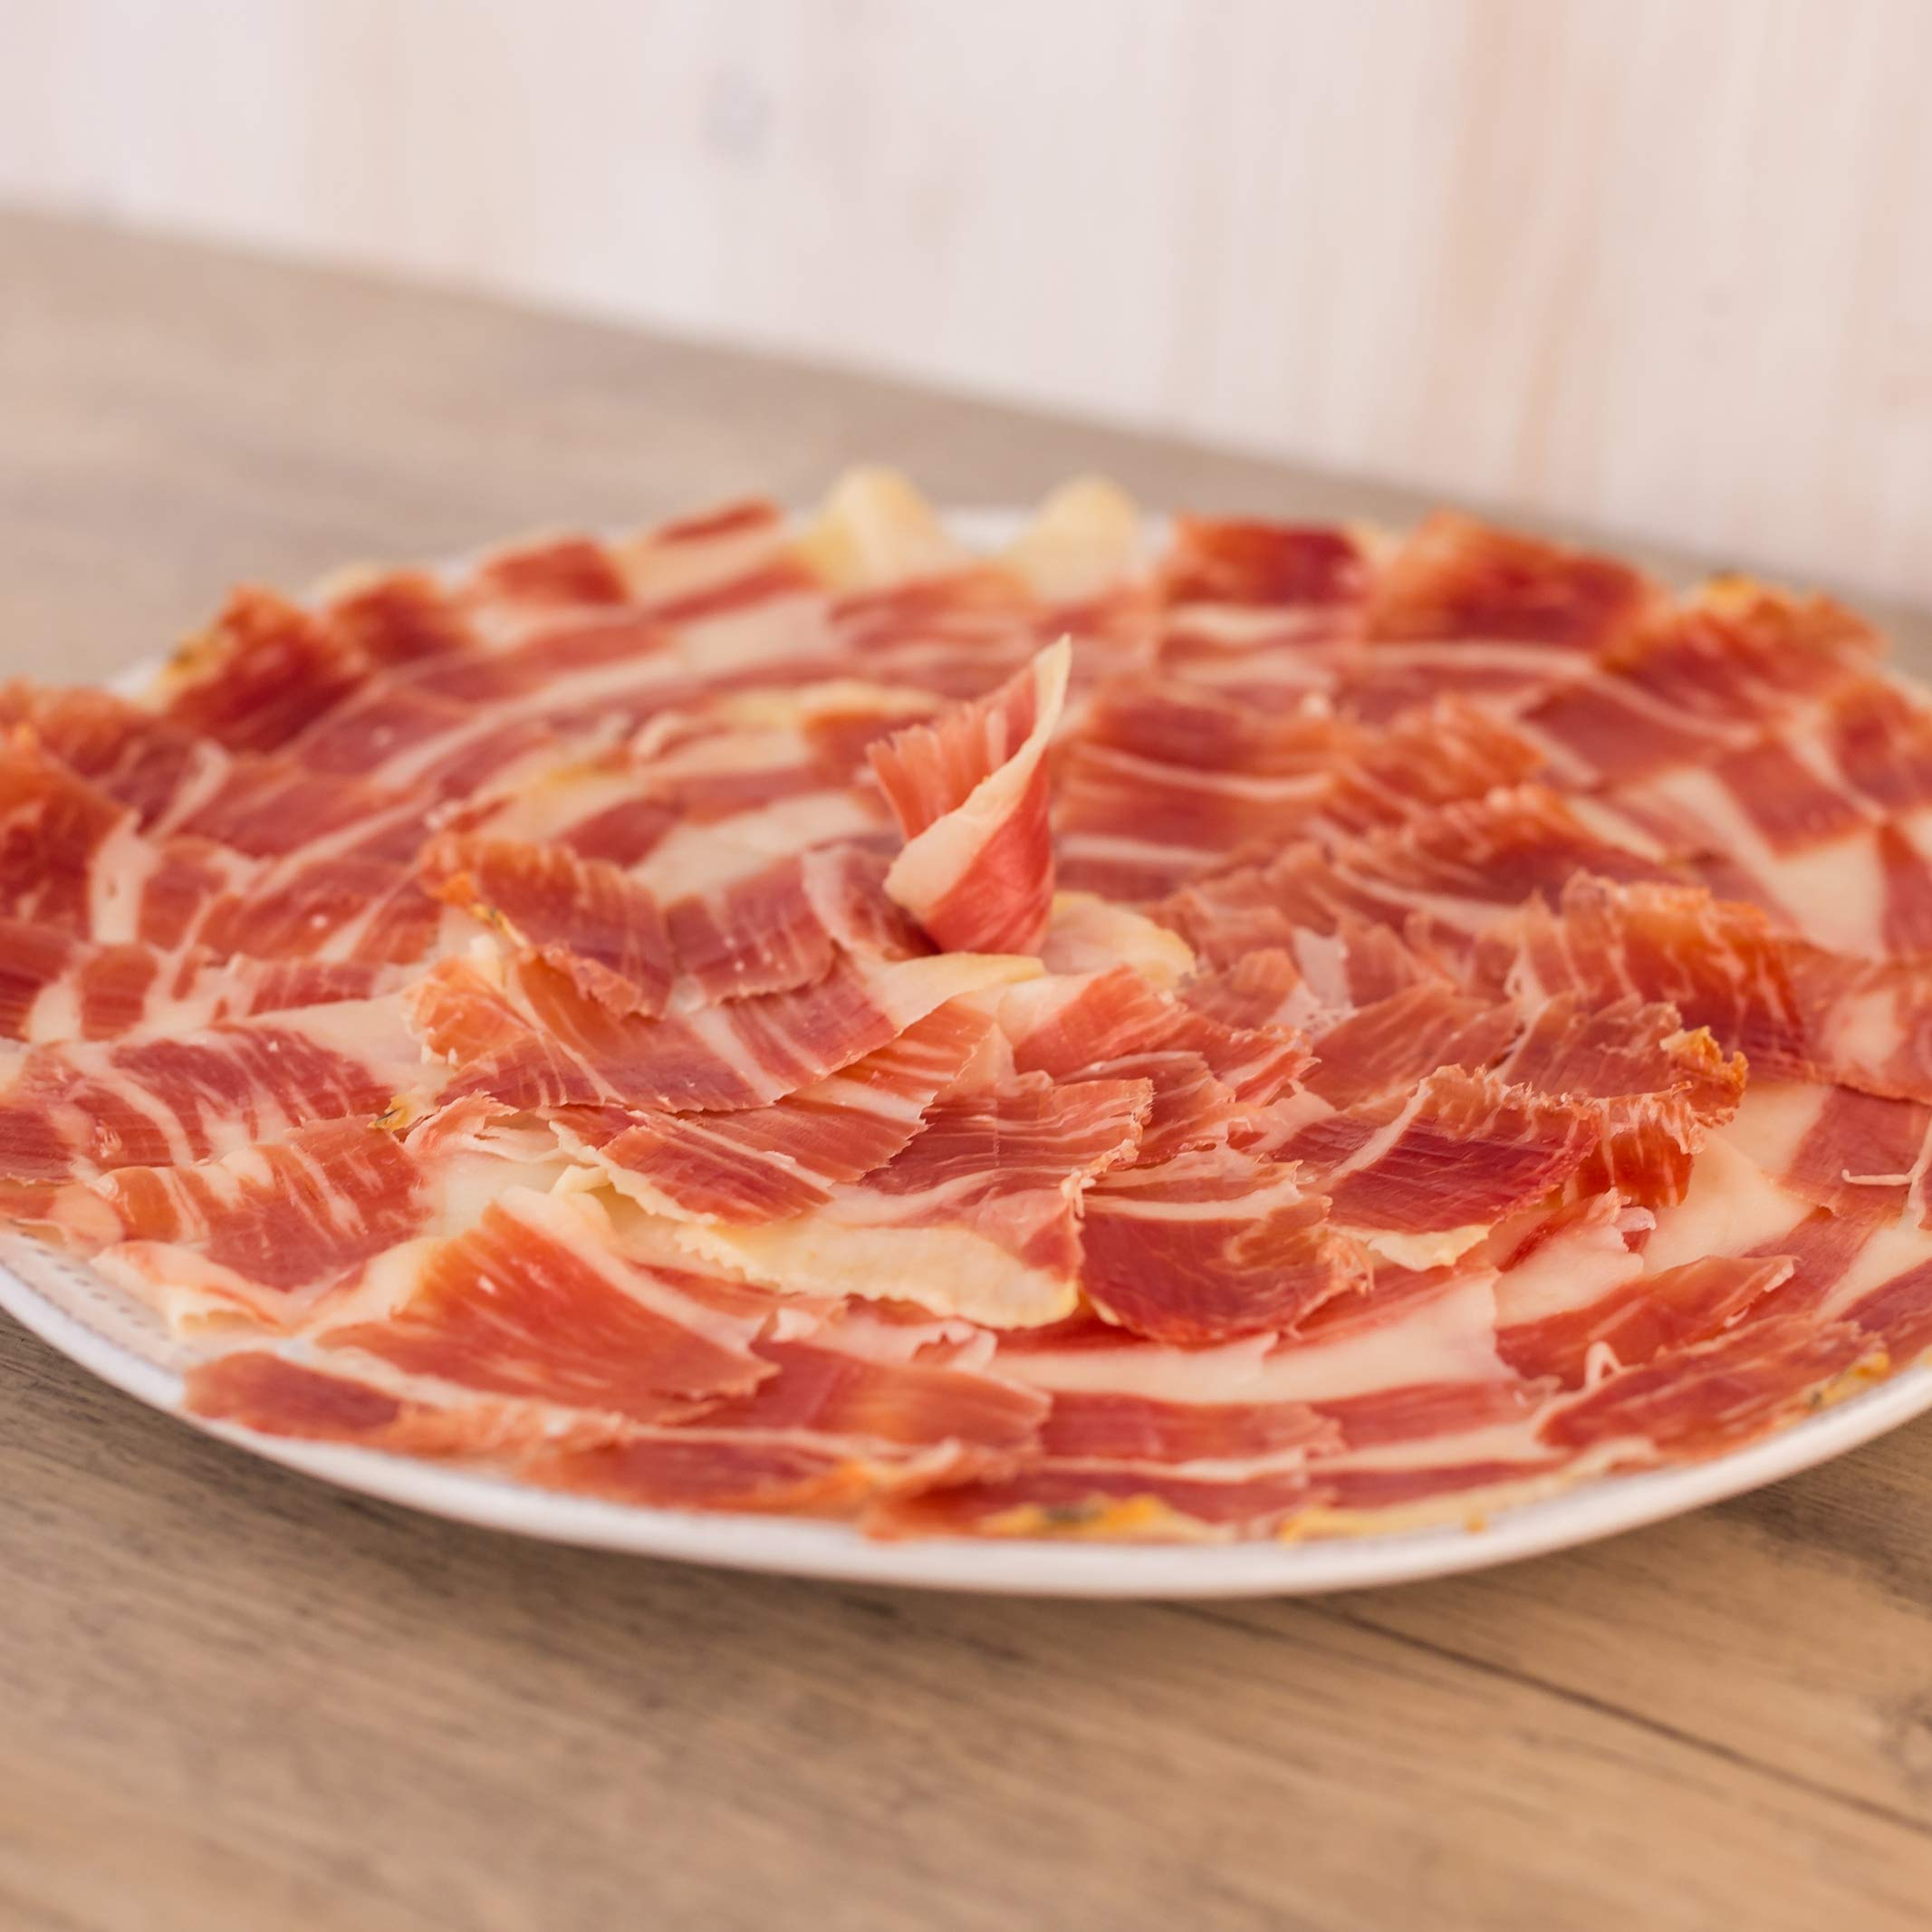 La Jamoteca - Pure Bellota Iberico Ham, Premium Quality, Hand Carved Style, 4 years curated, 100% Iberico, Pata Negra, 4 Packages - (2oz Each) by Loveiberico (Image #5)